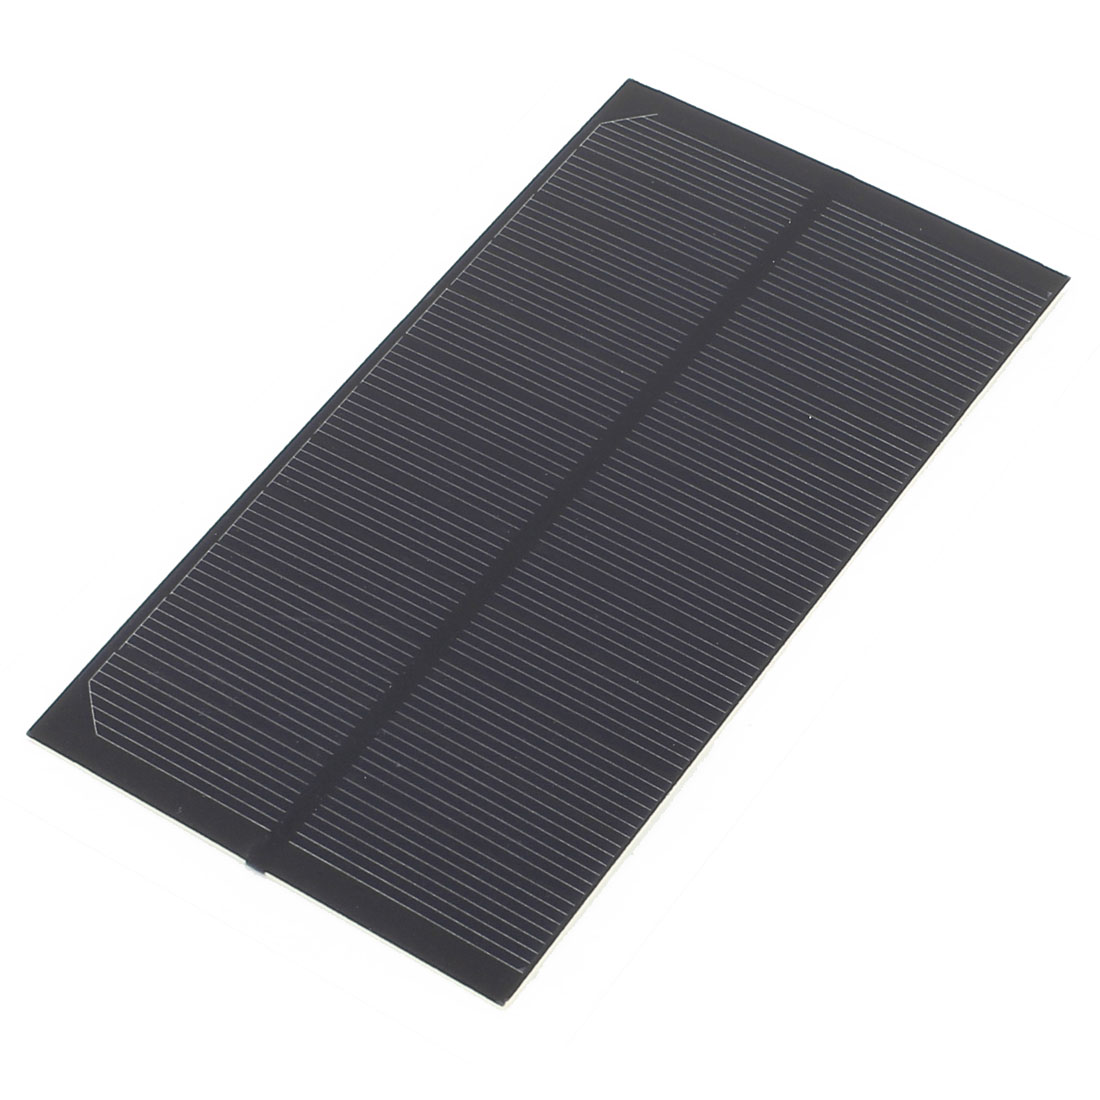 6V 1.8W DIY Polycrystallinesilicon Solar Panel Power Cell Battery Charger 150mm x 80mm